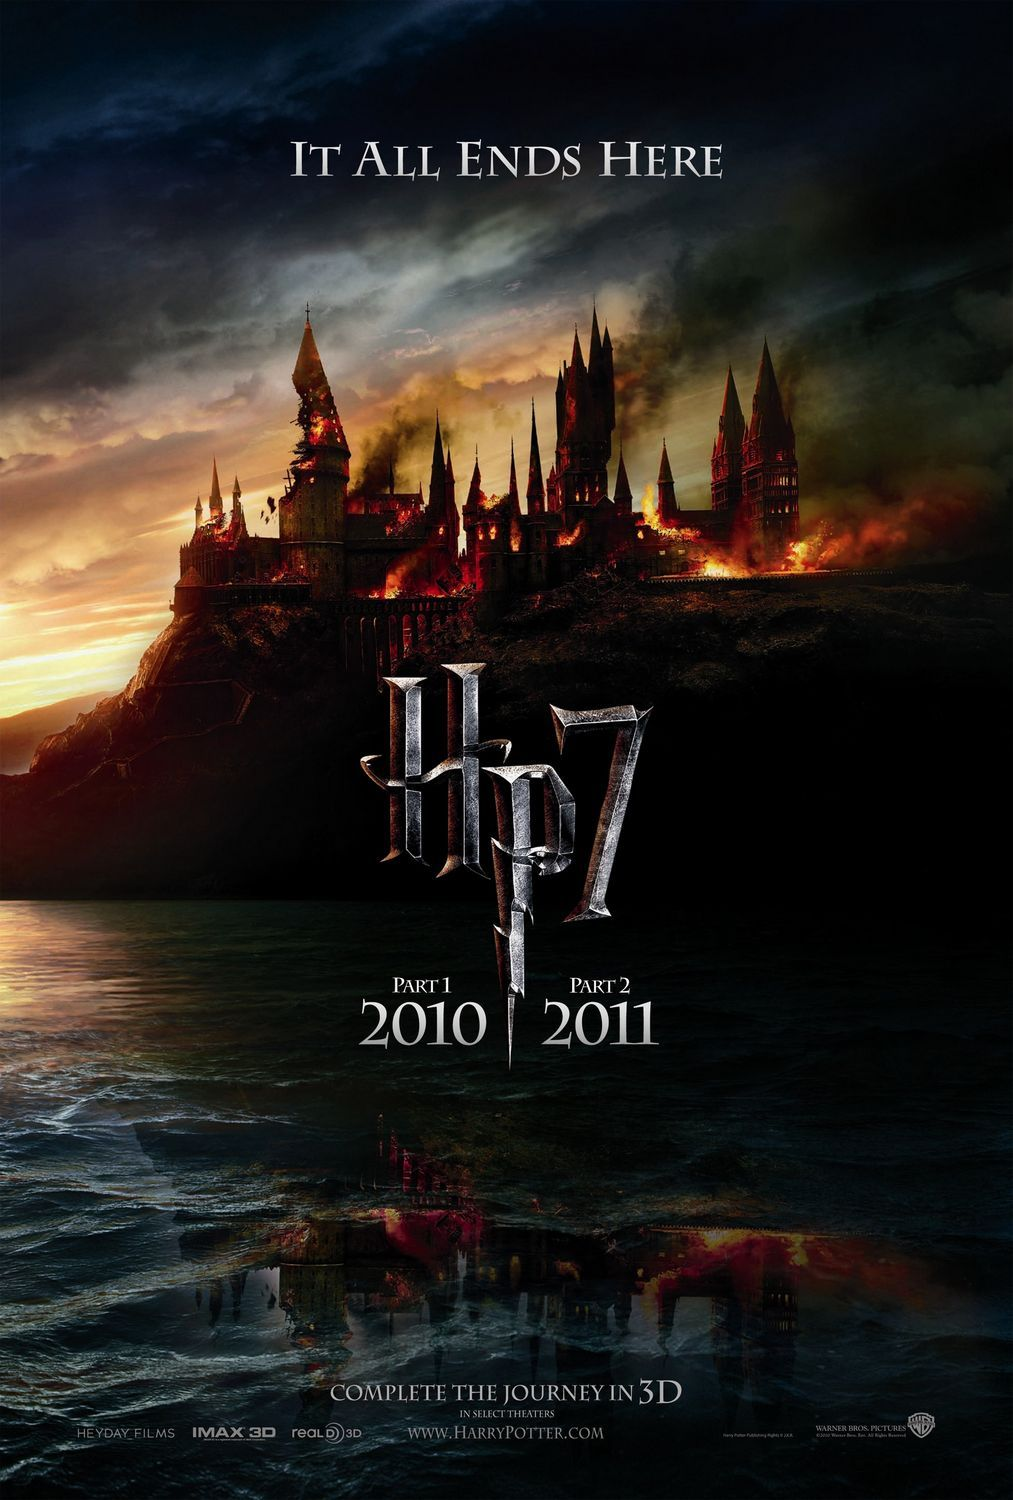 Harry Potter And The Deathly Hallows Part I Extra Large Movie Poster Image Internet Movie Poster A Wallpaper Harry Potter Harry Potter Imagens Harry Potter